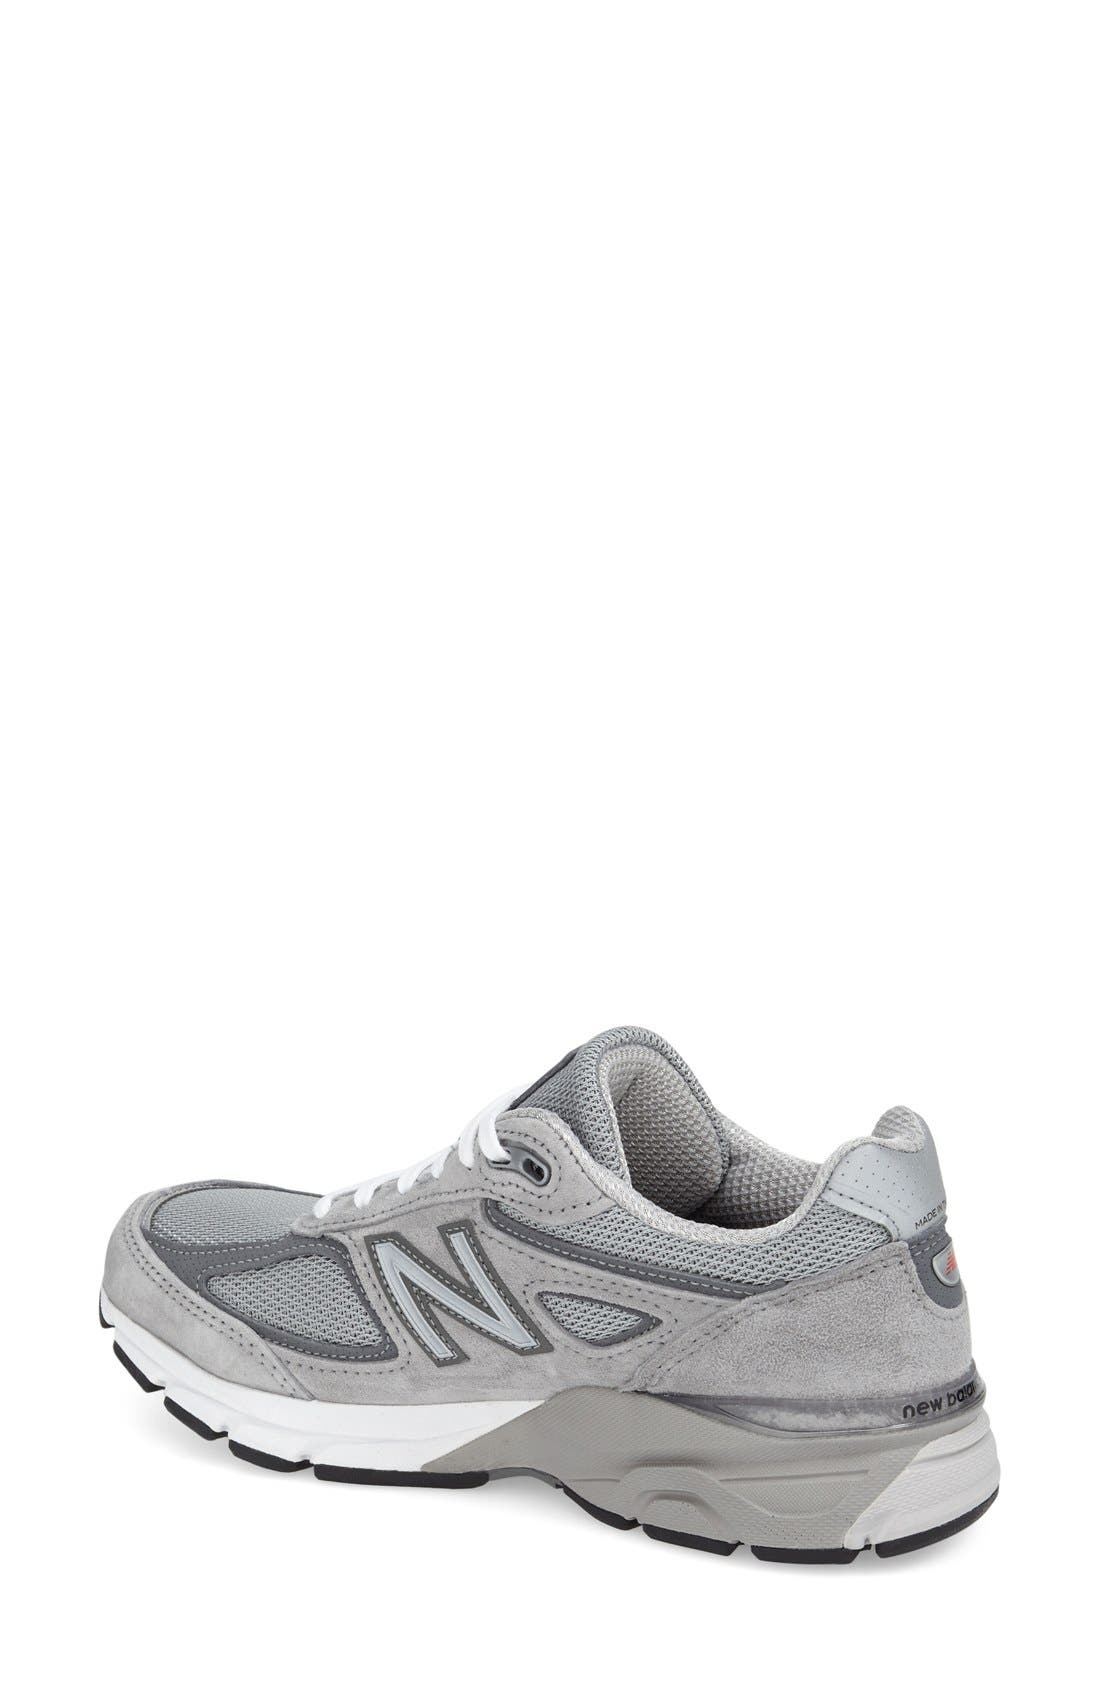 '990 Premium' Running Shoe,                             Alternate thumbnail 2, color,                             COOL GREY